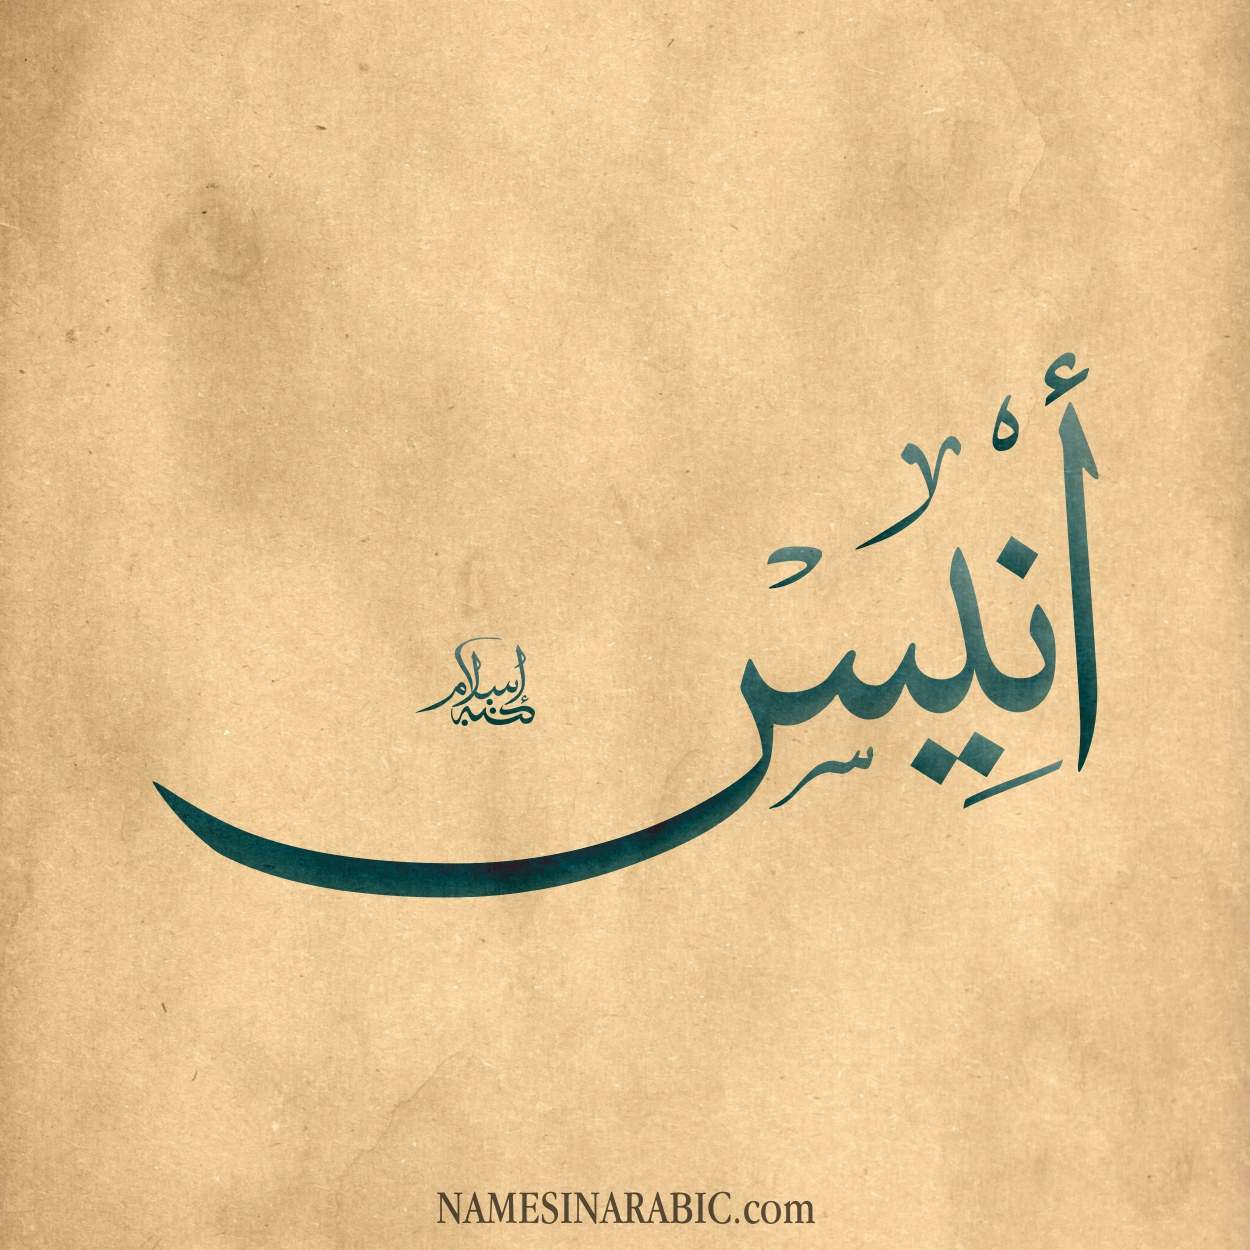 Anis-Name-in-Arabic-Calligraphy.jpg